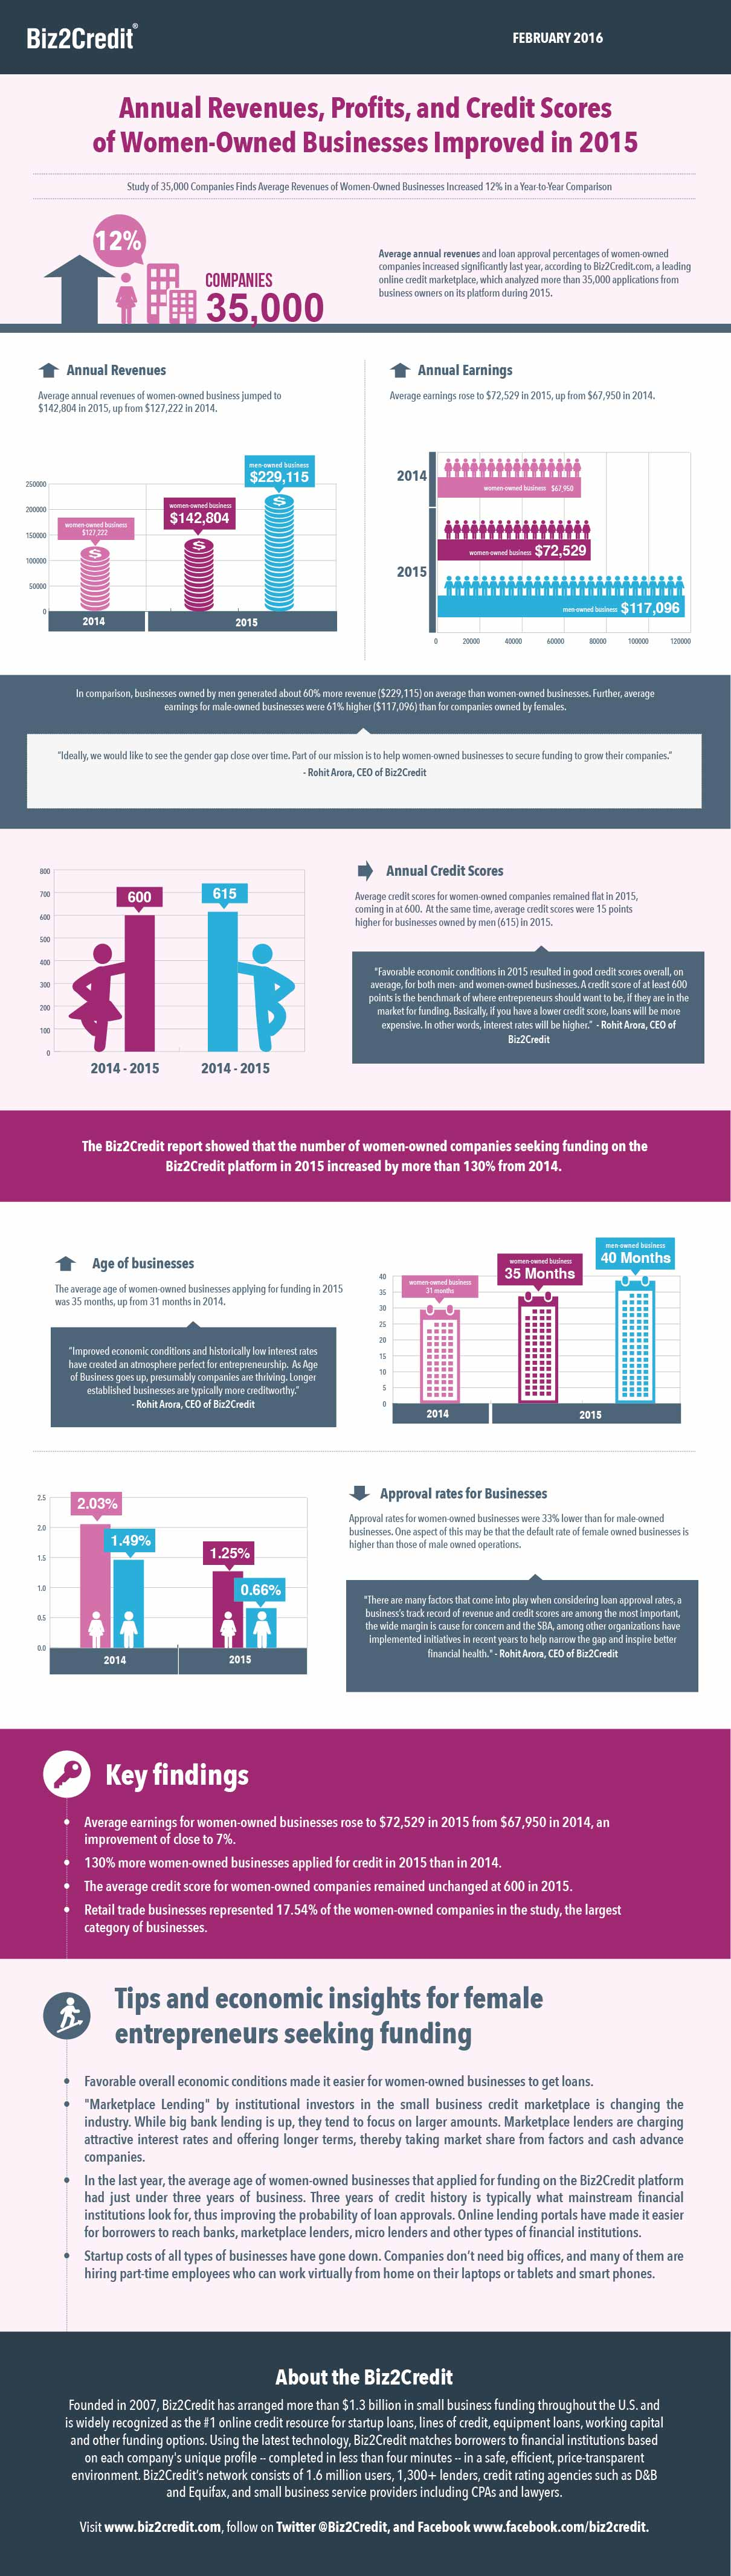 Info-graphic: Annual Revenues, Profits, and Credit Scores of Women-Owned Businesses Improved in 2015, According to Biz2Credit Study